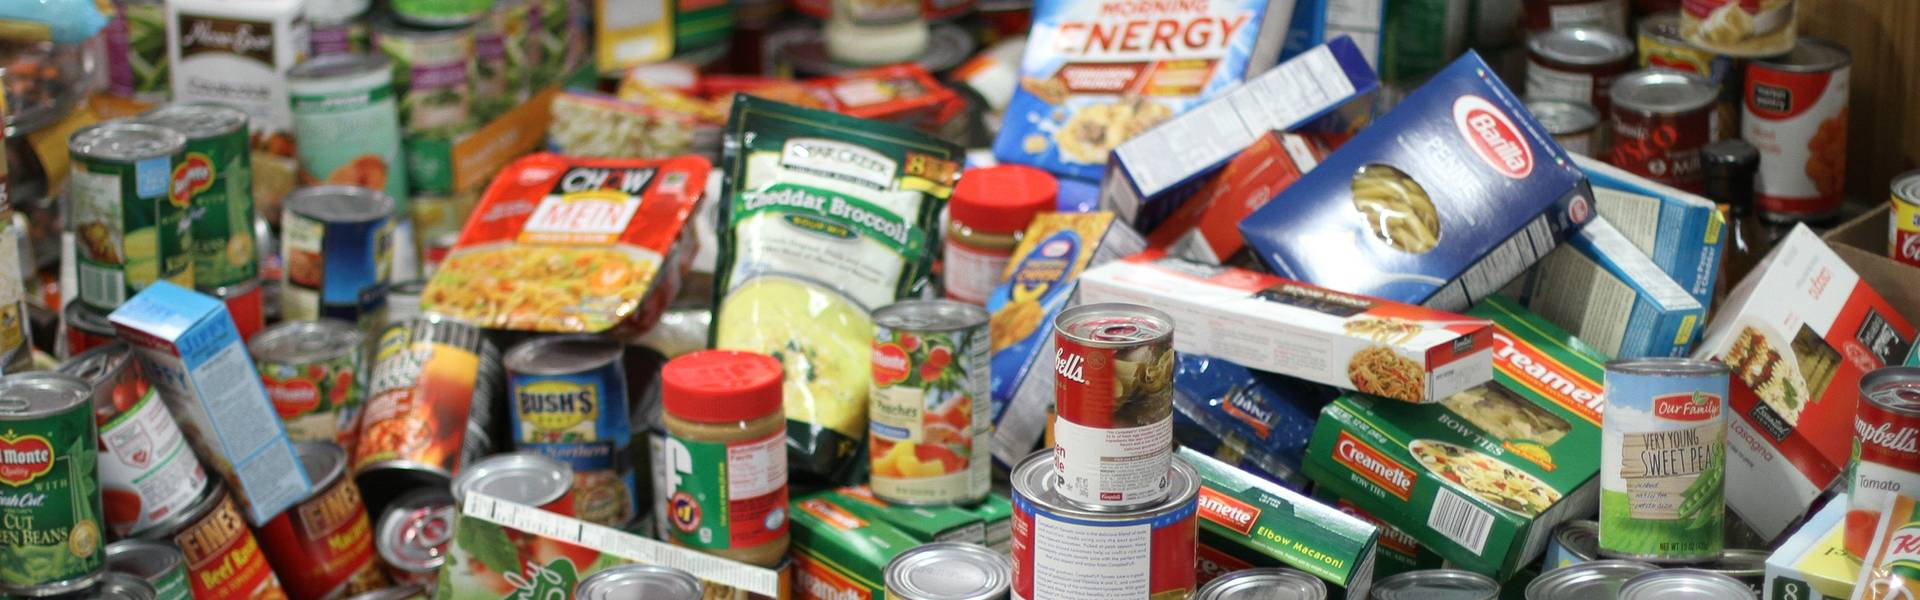 Food pile of donated cans and nonparishable foods